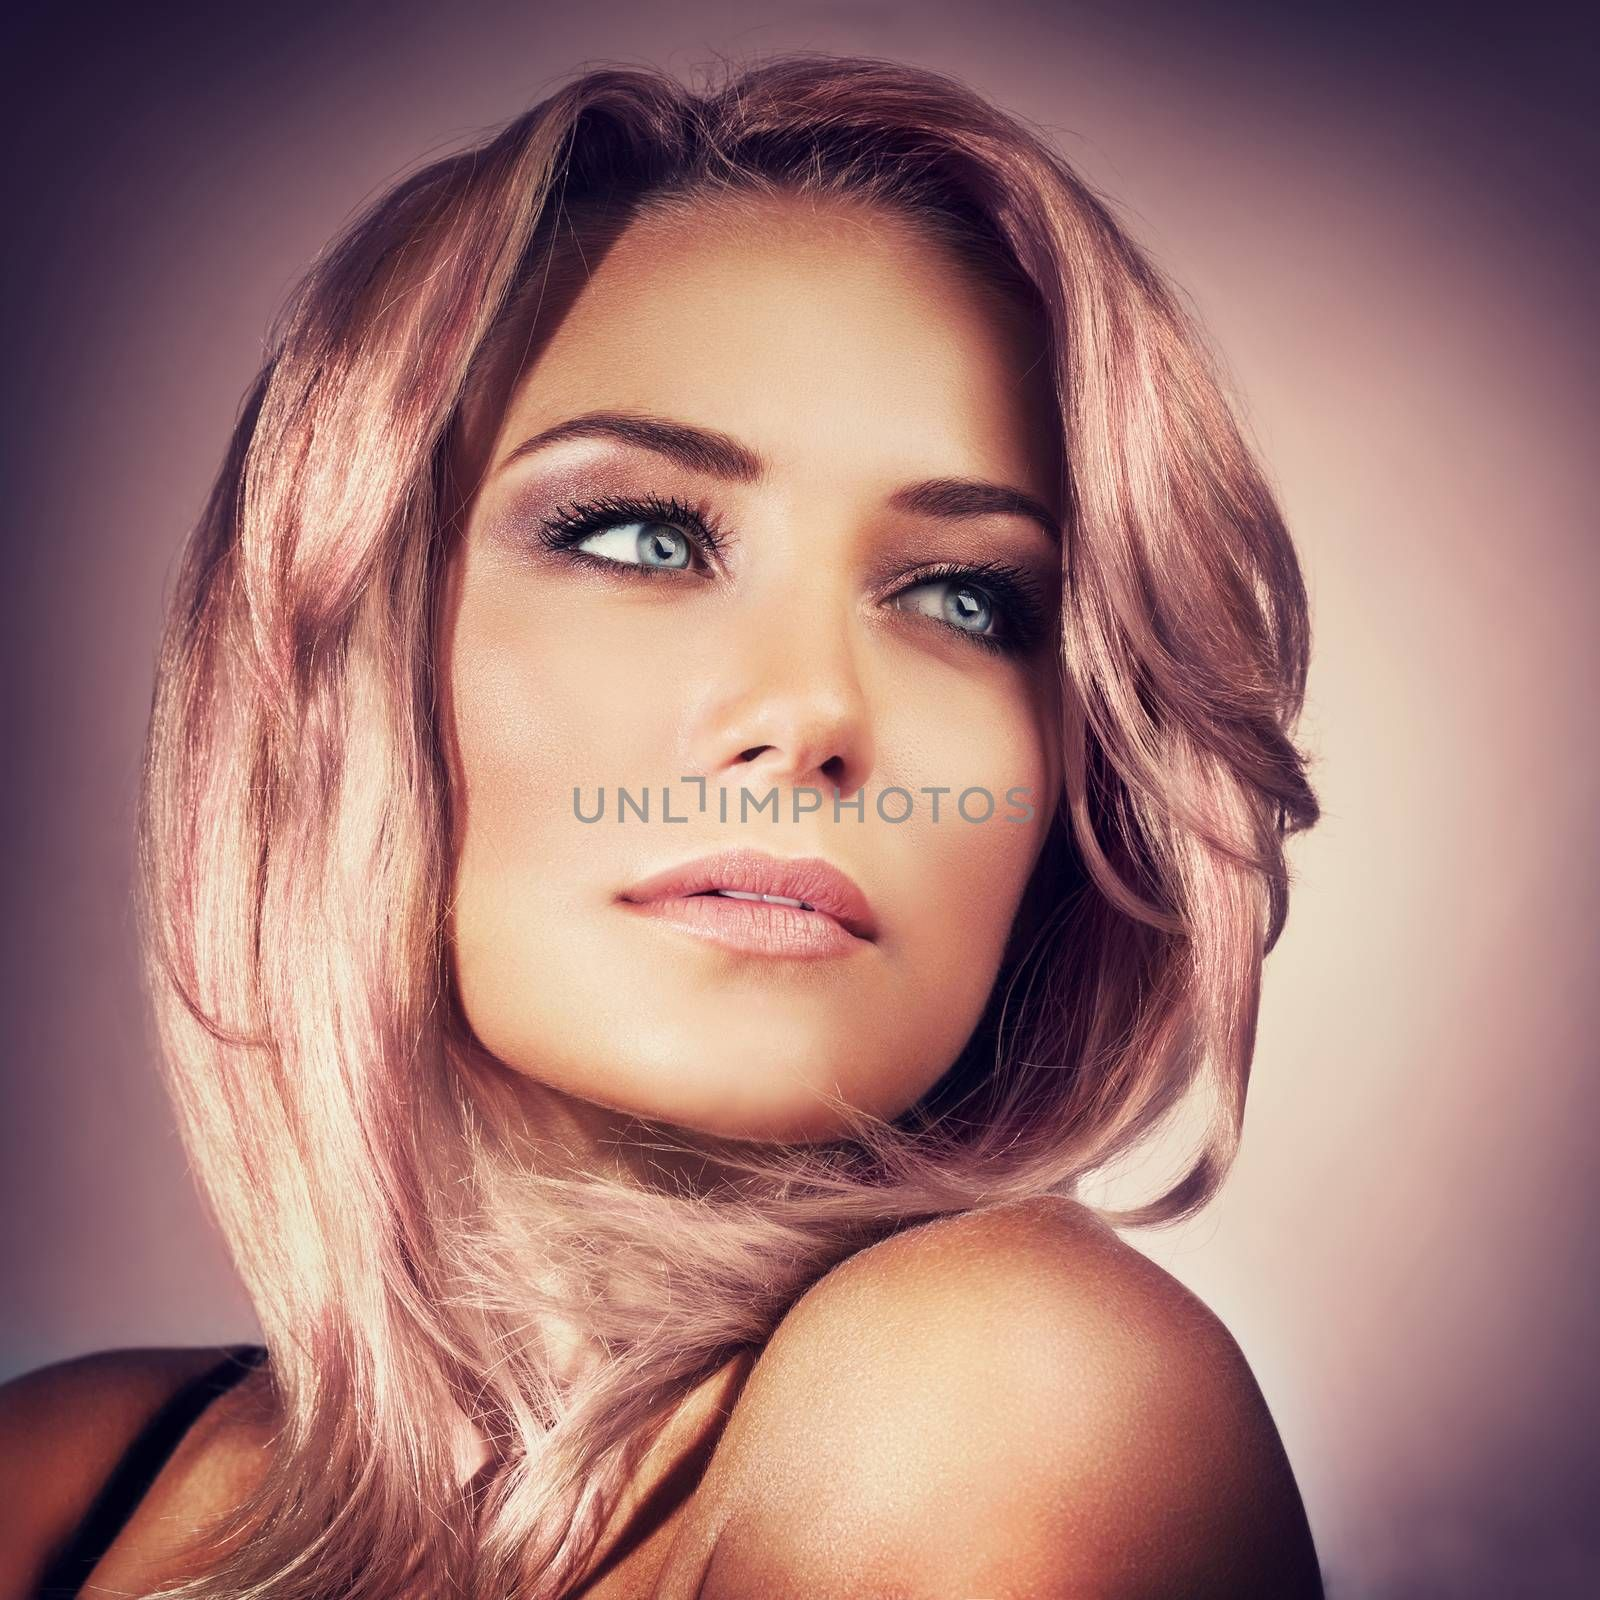 Closeup portrait of a beautiful sexy woman with trendy pink pastel hair color and smoky eyes makeup, face over purple background, fashionable look